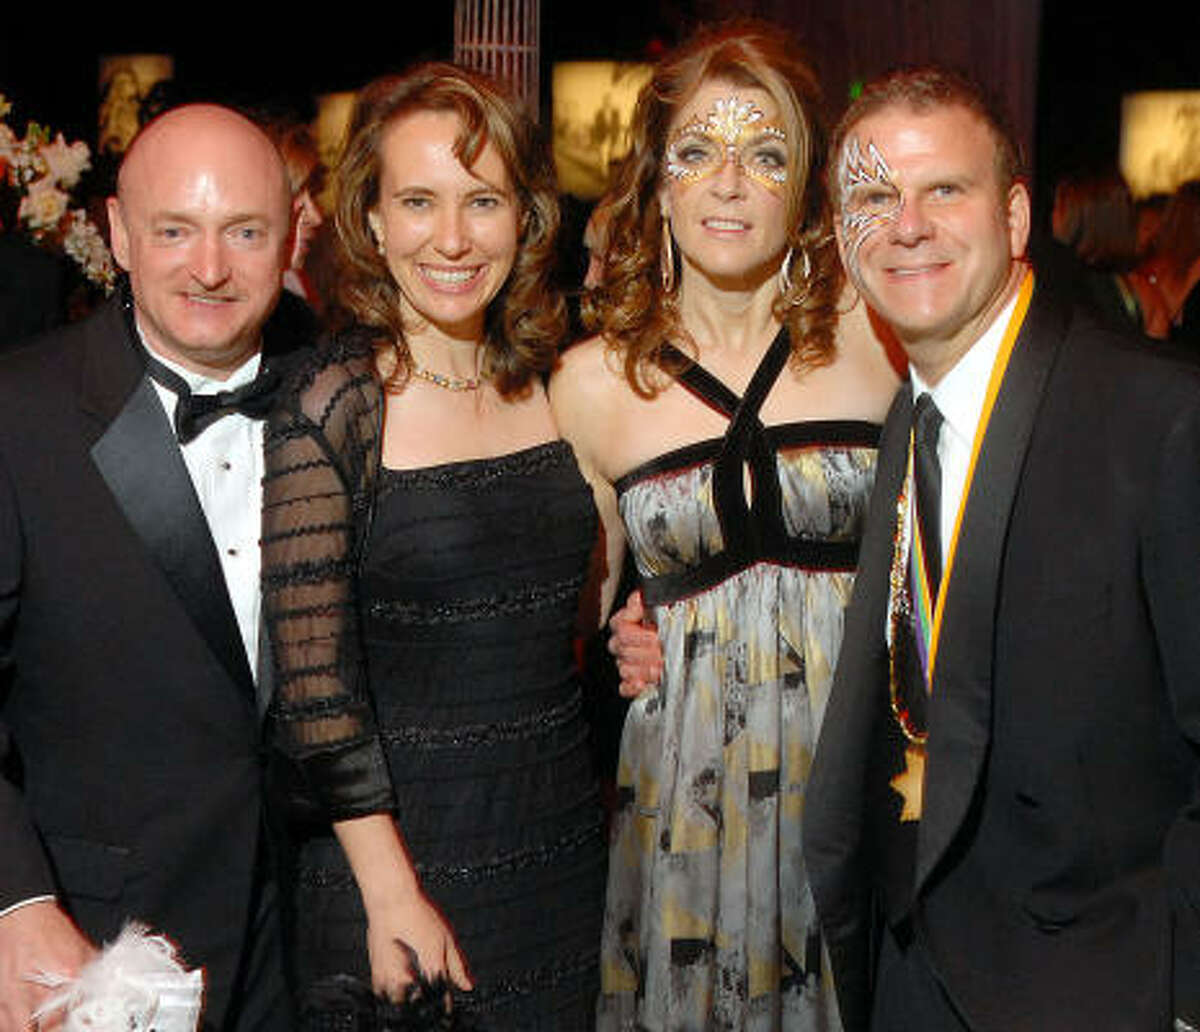 In happier times, Gabrielle Giffords, second from left, and her husband, NASA astronaut Mark Kelly, left, celebrated with Paige and Tilman Fertitta at